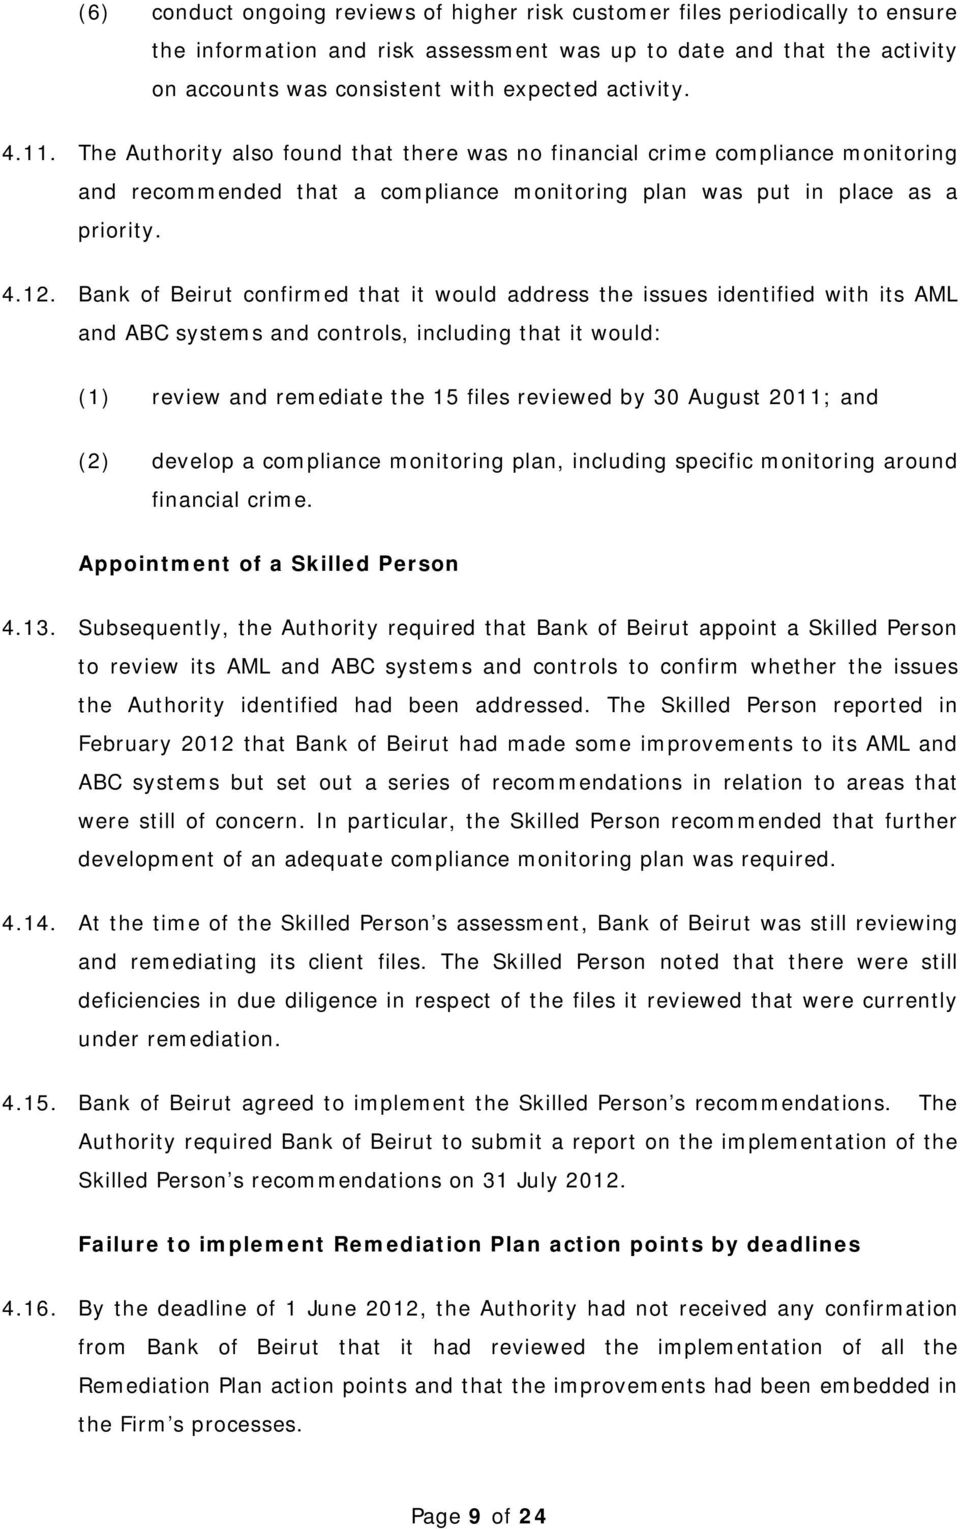 Bank of Beirut confirmed that it would address the issues identified with its AML and ABC systems and controls, including that it would: (1) review and remediate the 15 files reviewed by 30 August